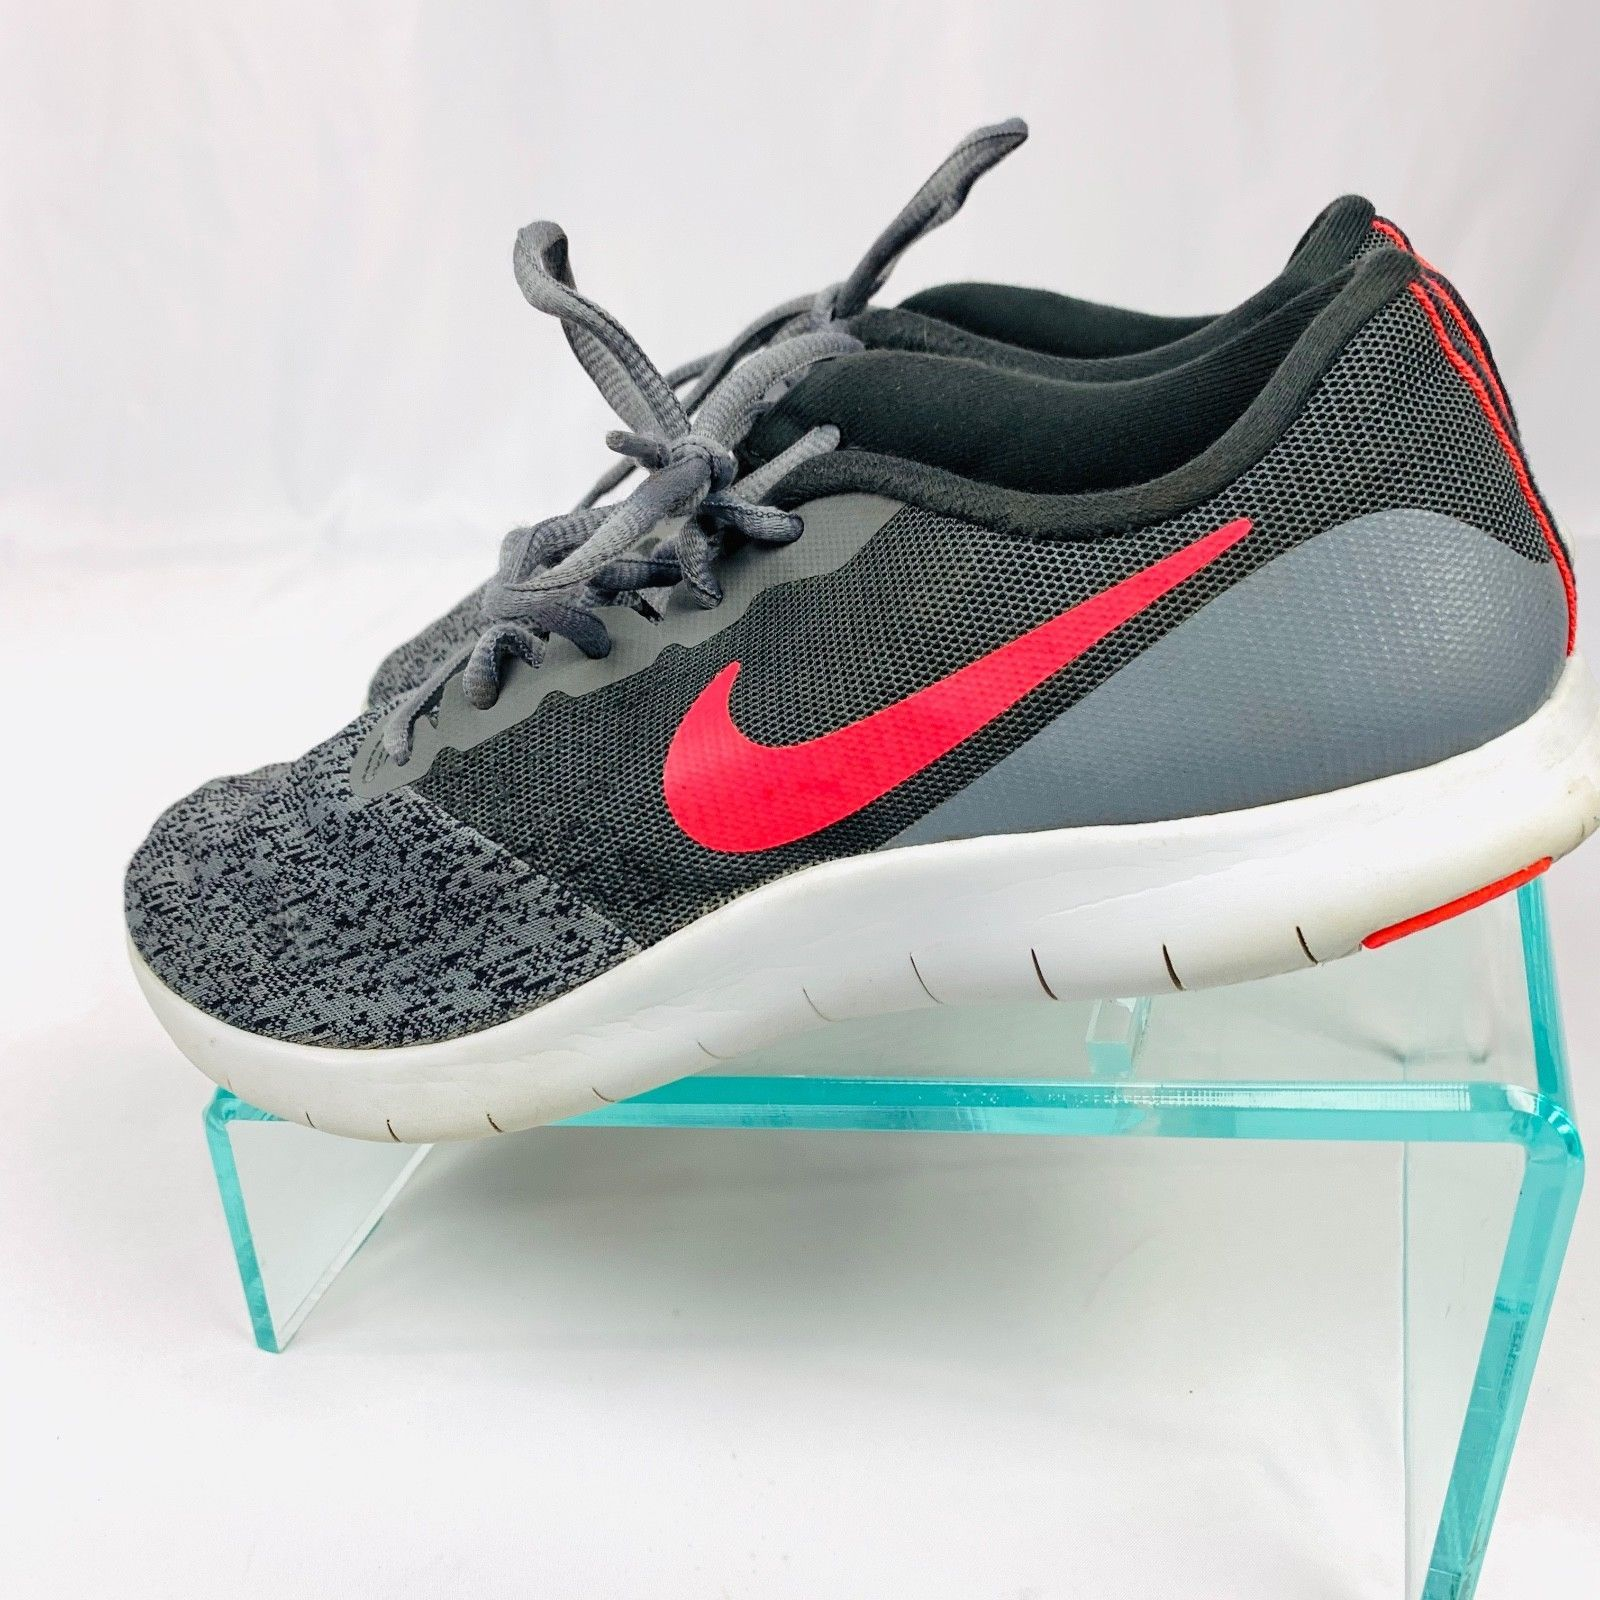 NIKE Women's  sz 8.5 Gray Flex Contact Running Sneakers 908995-005